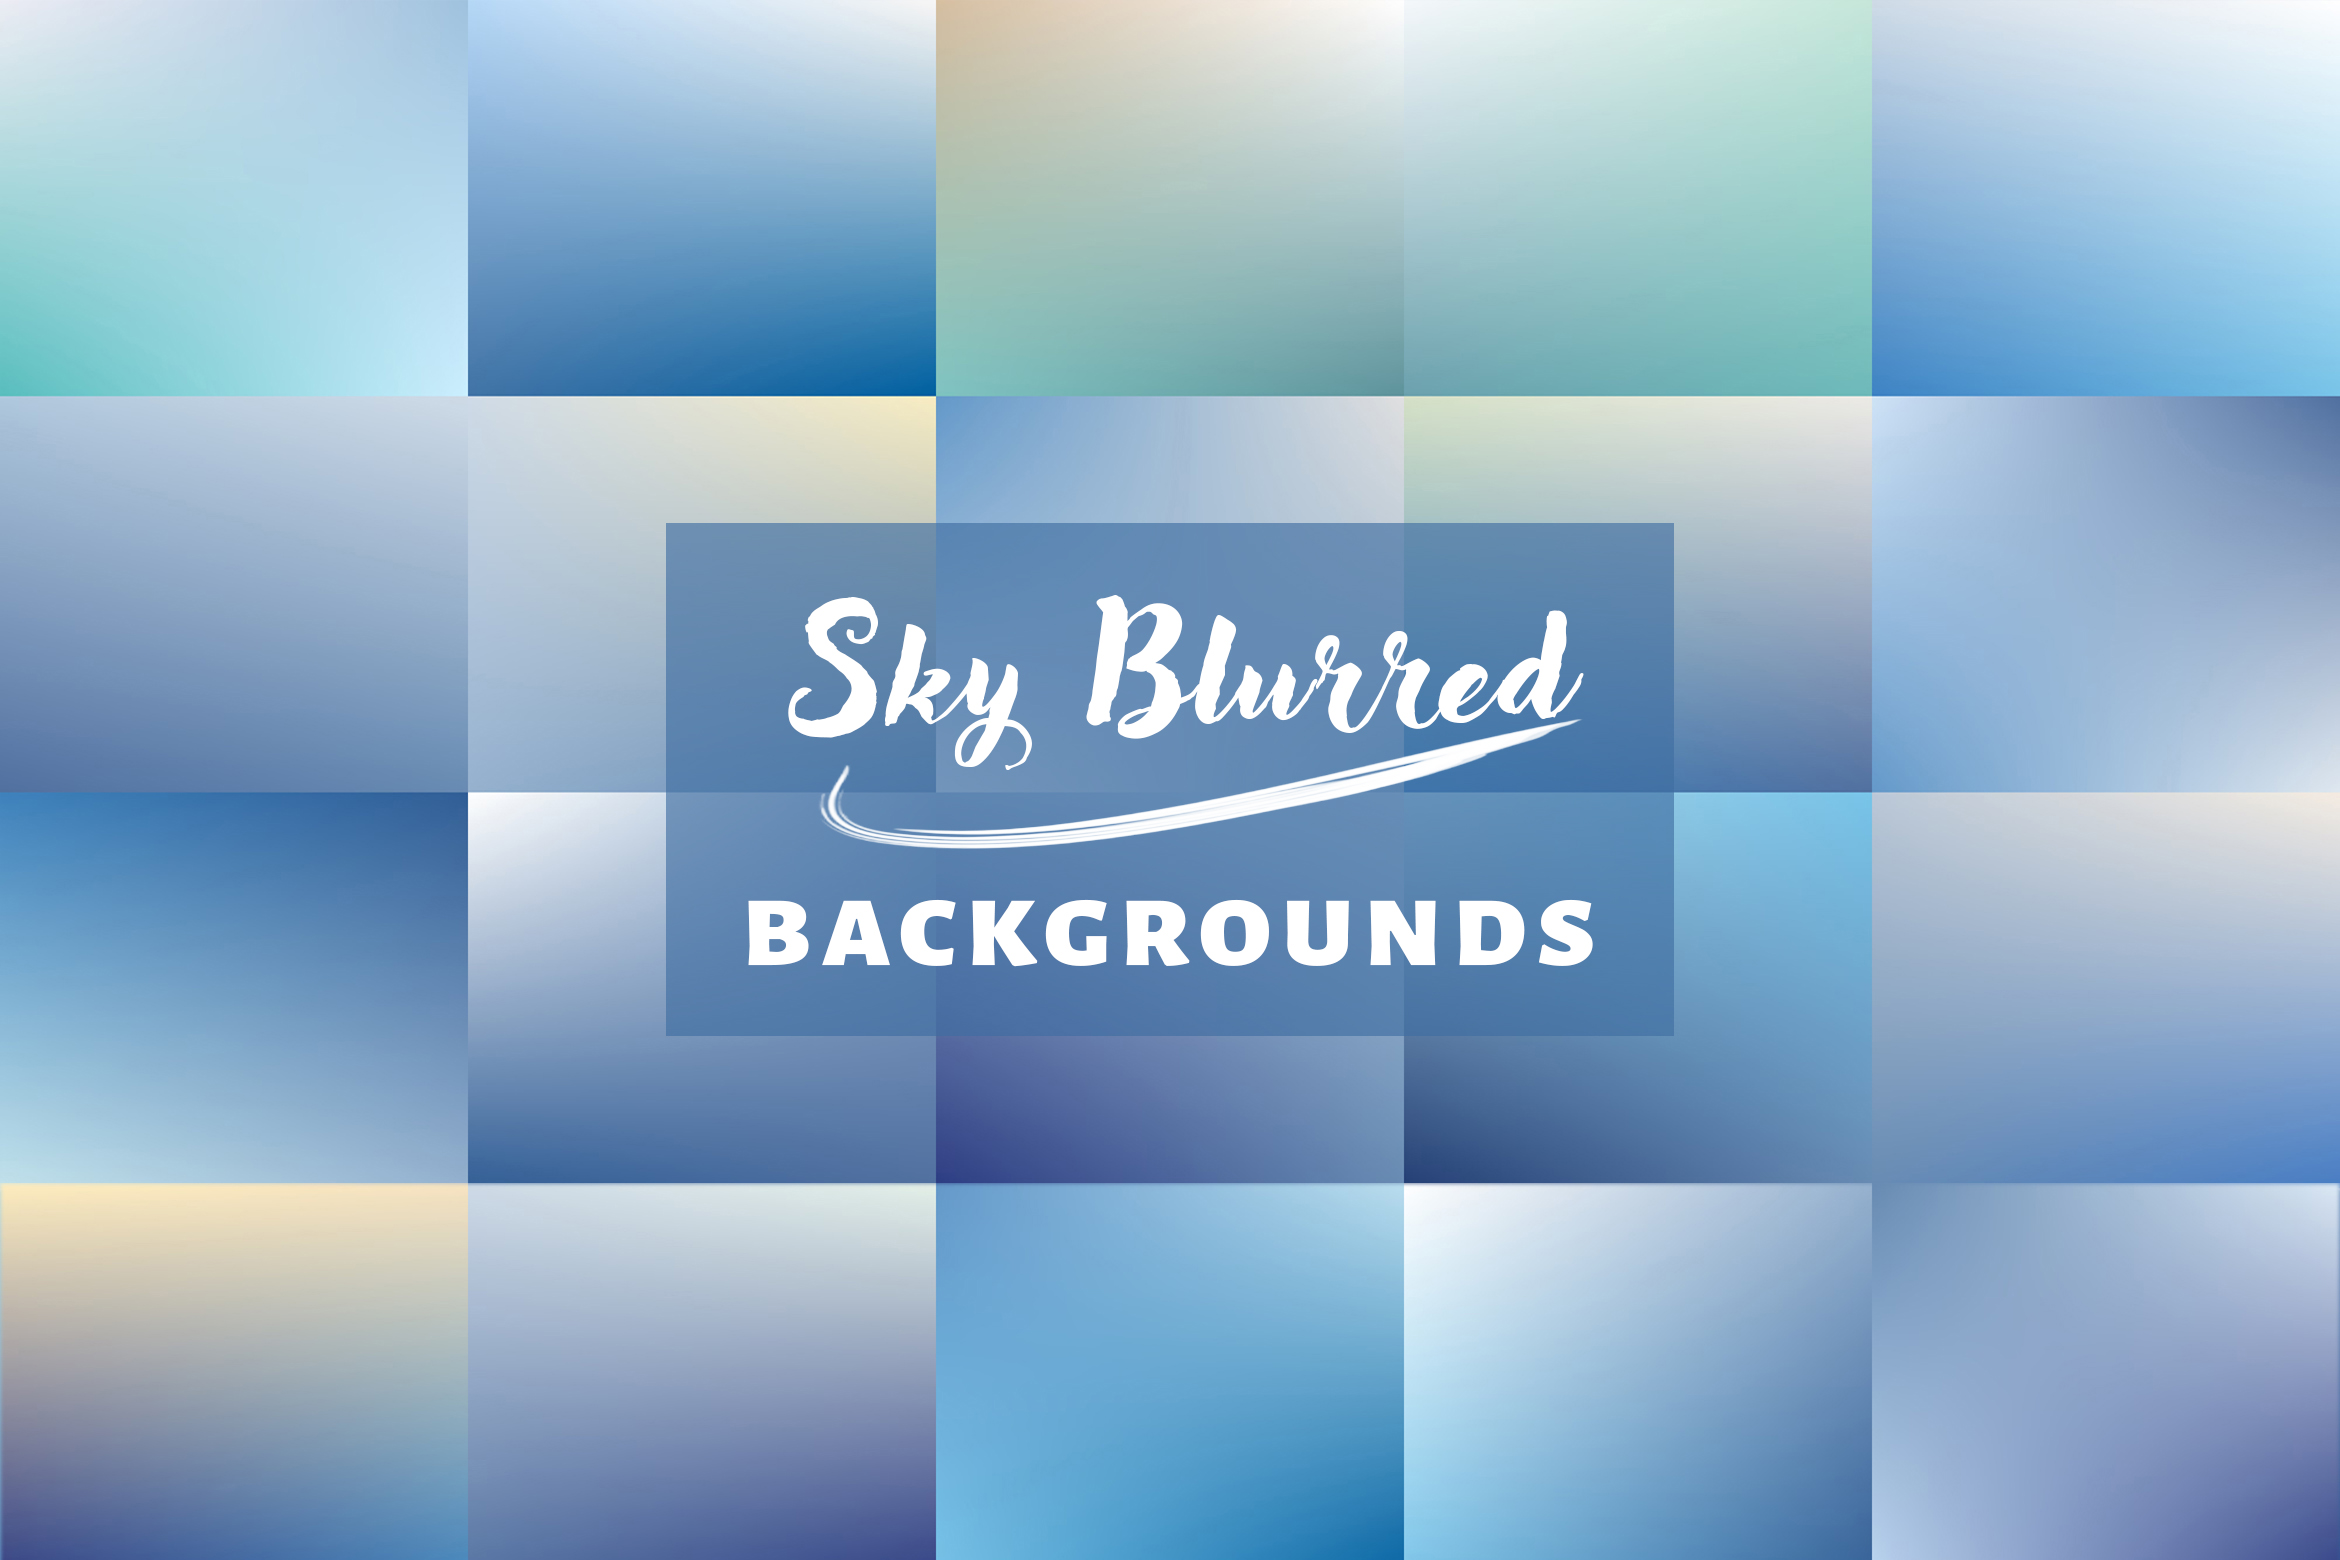 20 Sky Blurred Backgrounds JPG in High Resolution example image 2